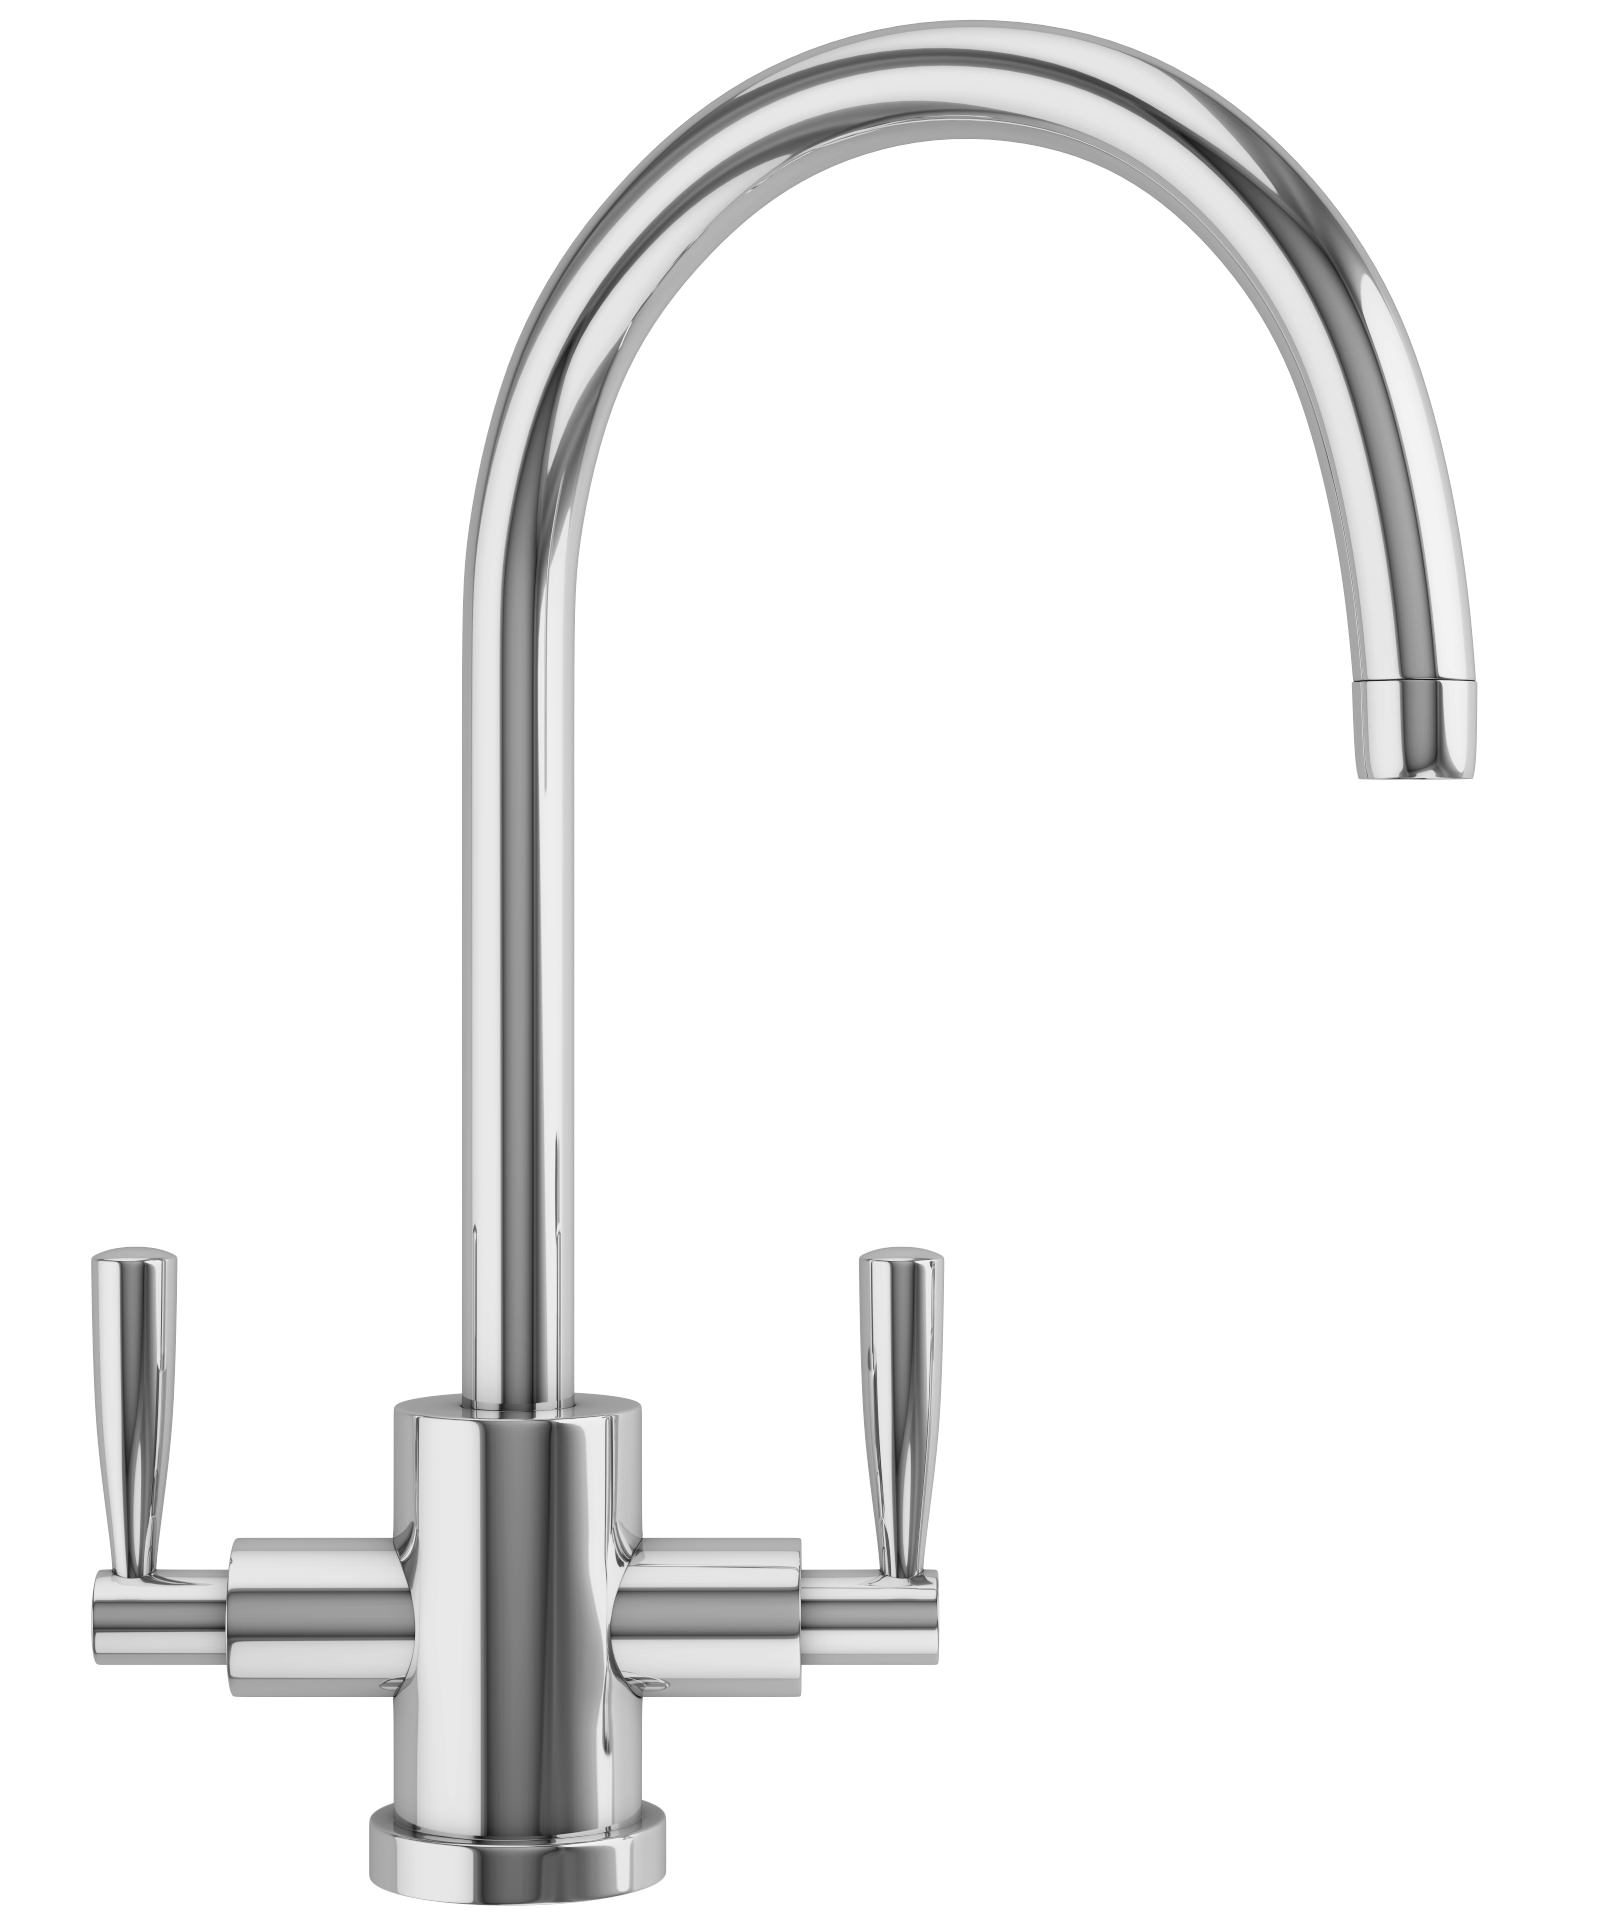 Franke Olympus Kitchen Sink Mixer Tap Chrome